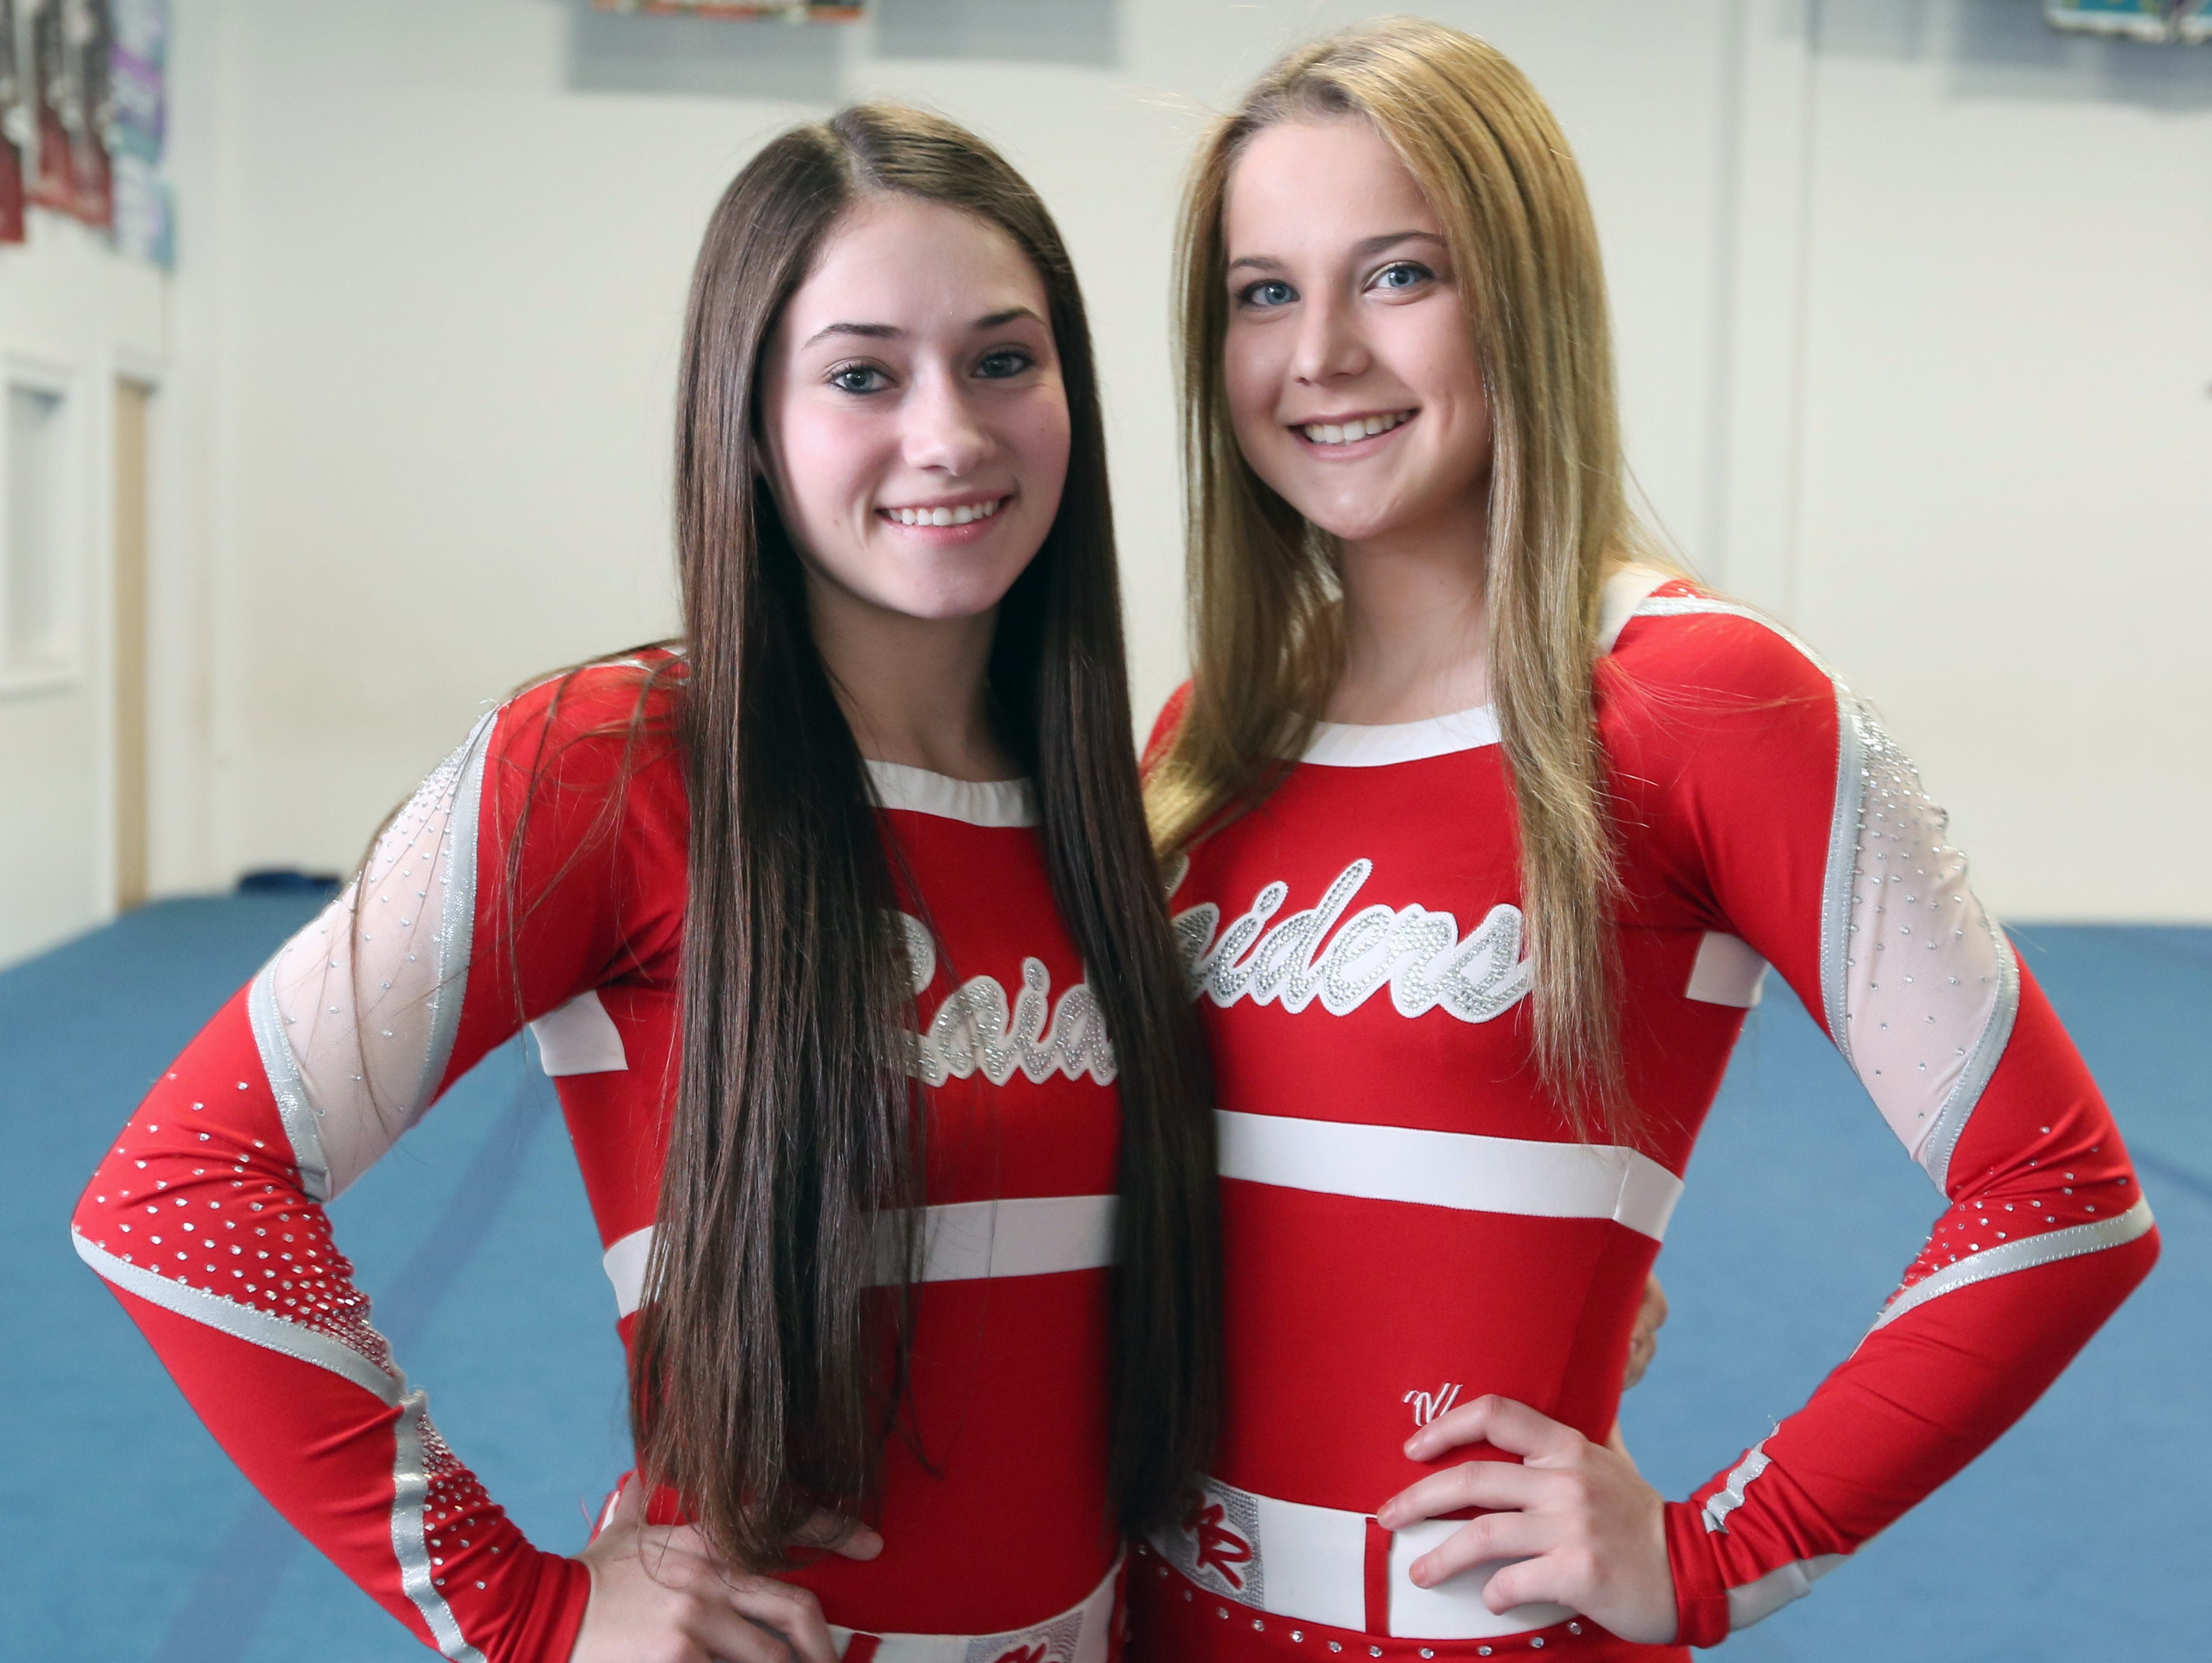 North Rockland's Julia Garrison, left, and Kaitlyn Garvey, Rockland co-cheerleaders of the year, April 1, 2016.